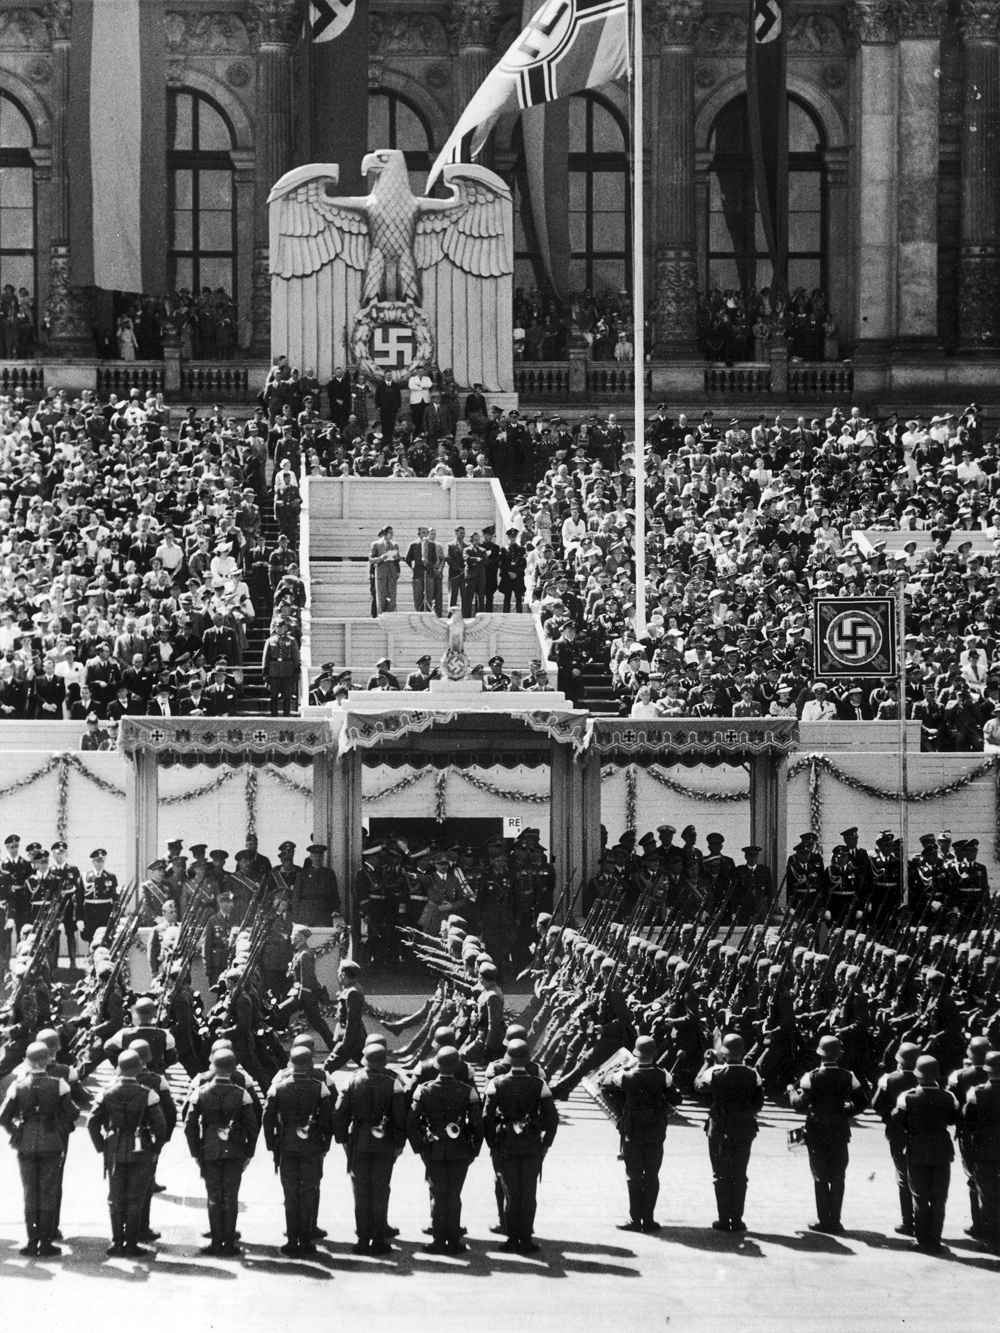 Parade of the Legion Condor in front of Berlin's Technische Hochschule in Charlottenburg, Adolf Hitler is in the tribune with officials and guests